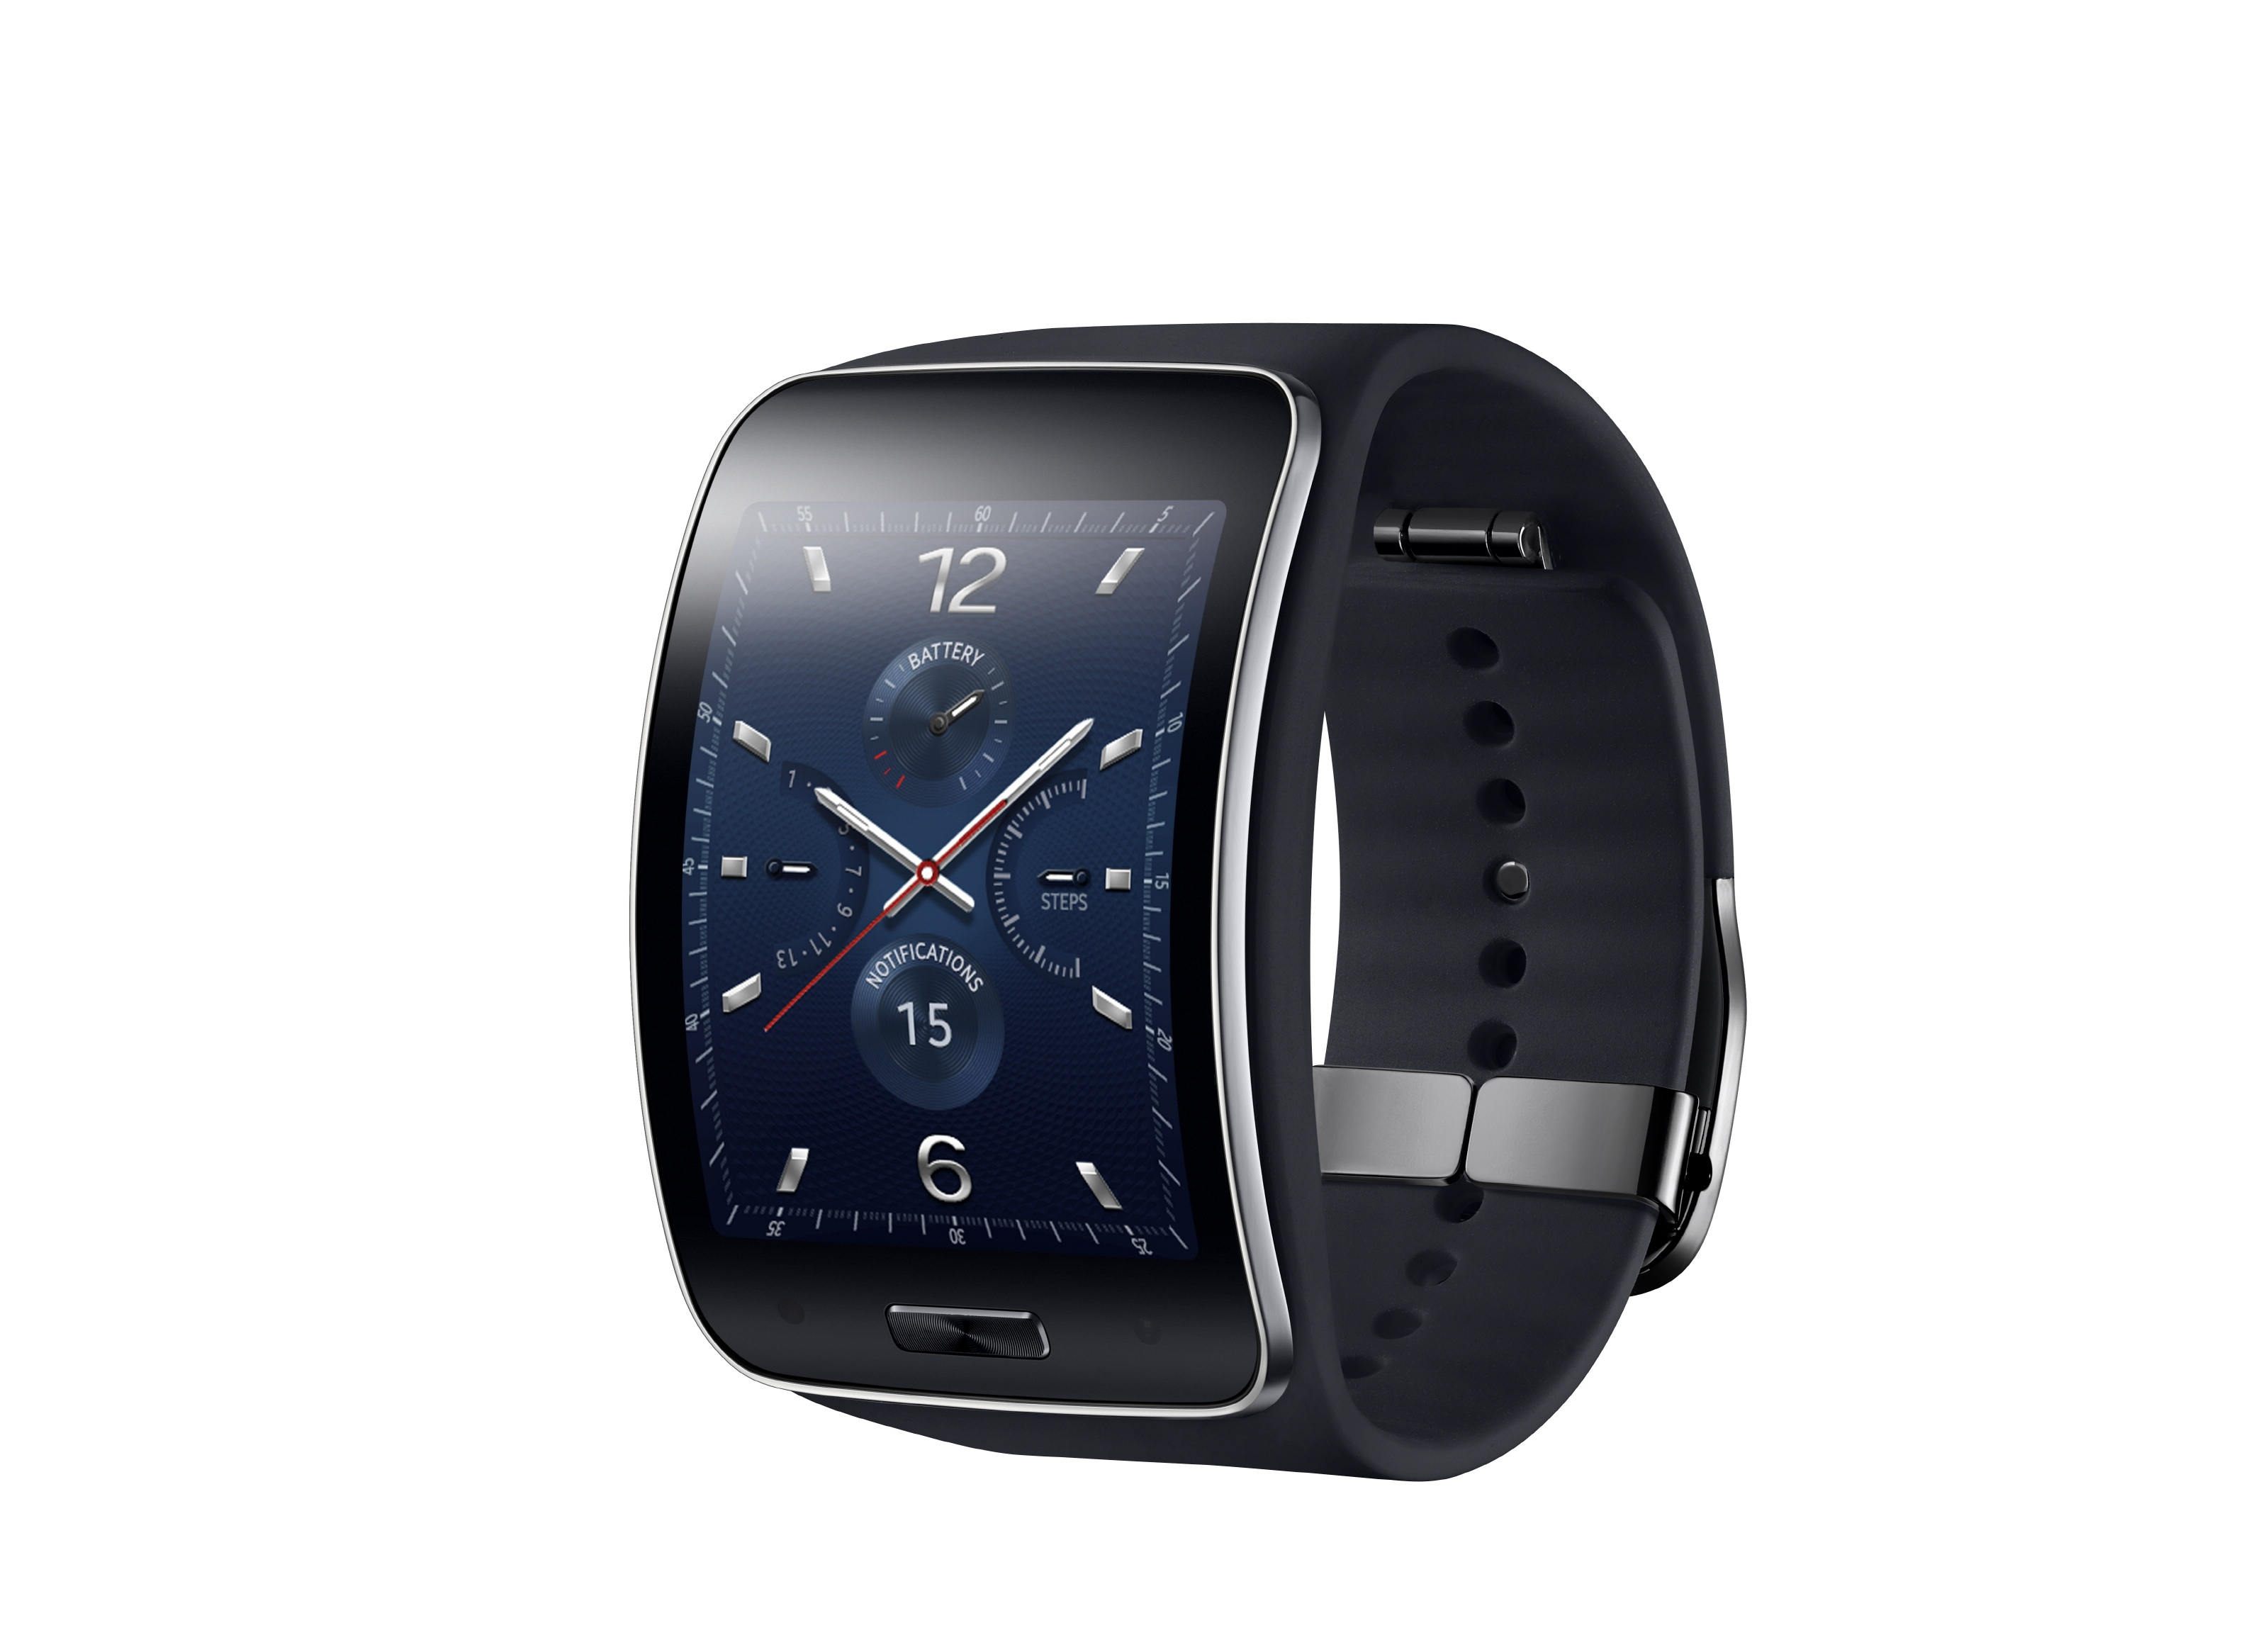 Samsung gear s smartwatch revealed with curved display 3g connectivity expert reviews for Watches gear